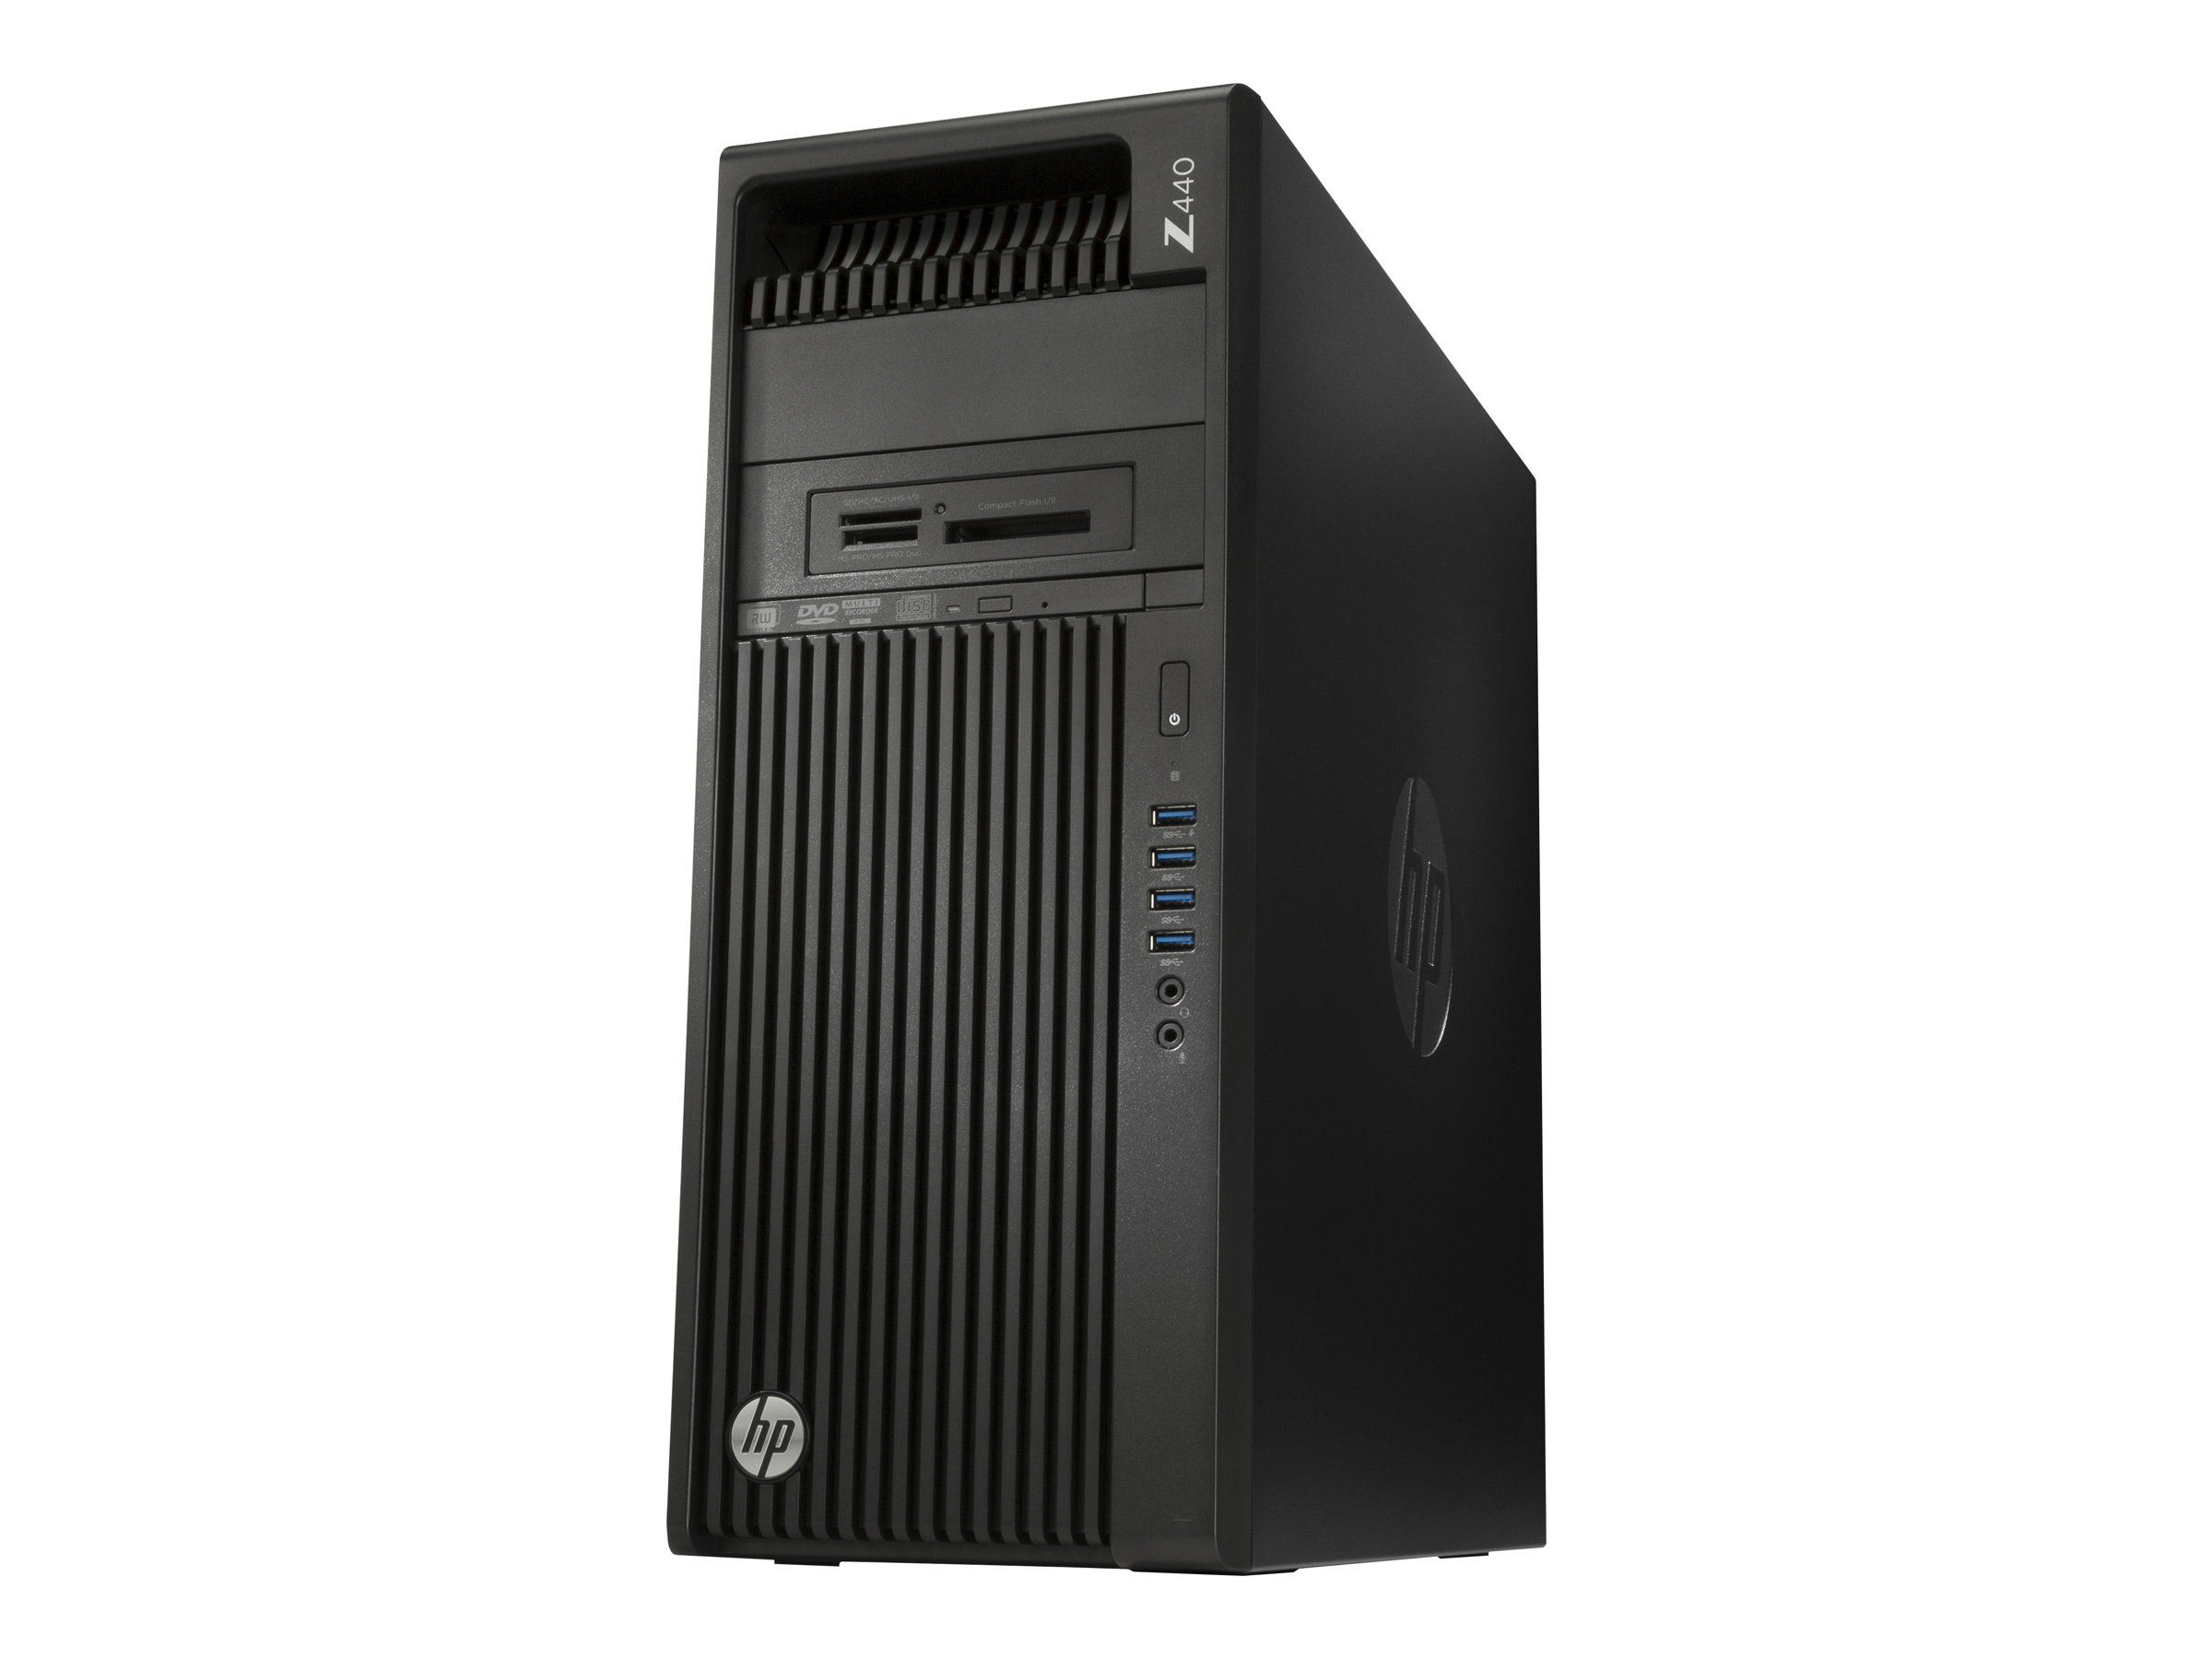 HP Workstation Z440 - MT - 4U - 1 x Xeon E5-1620V4 / 3.5 GHz - RAM 8 GB - SSD 128 GB, HDD 2 TB